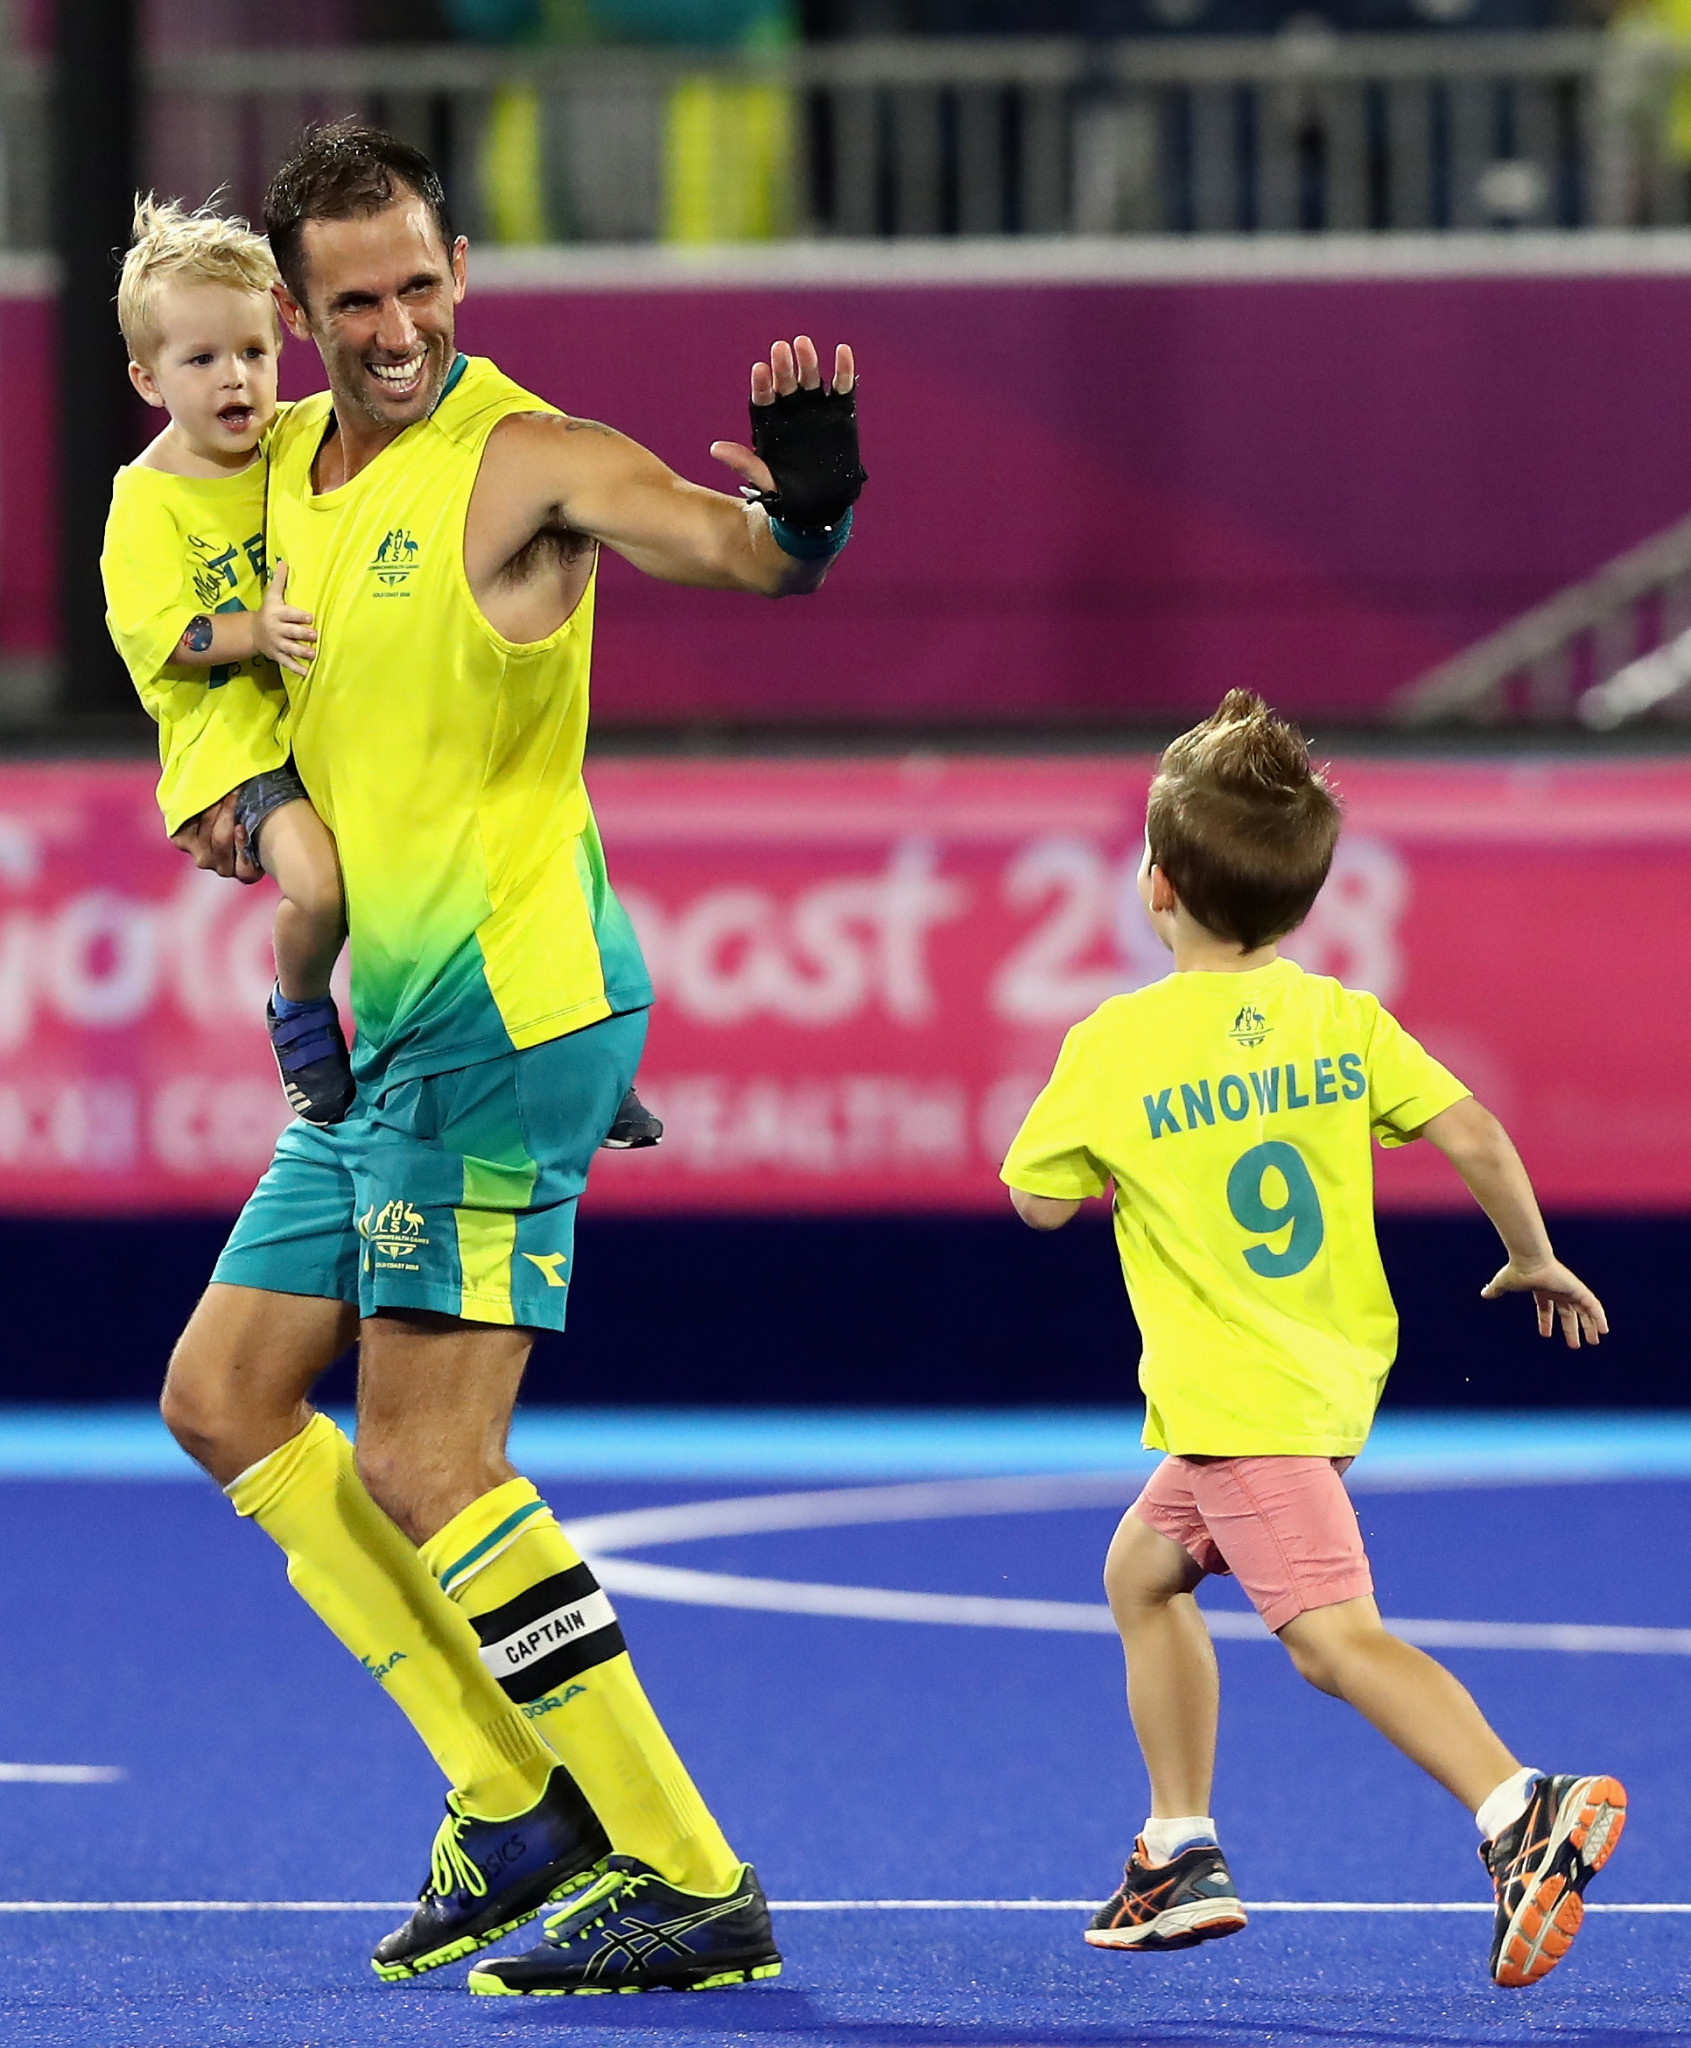 Keynote speakers include Mark Knowles, who ended his career earlier this month by captaining Australia to the men's hockey title at the Gold Coast 2018 Commonwealth Games ©Getty Images